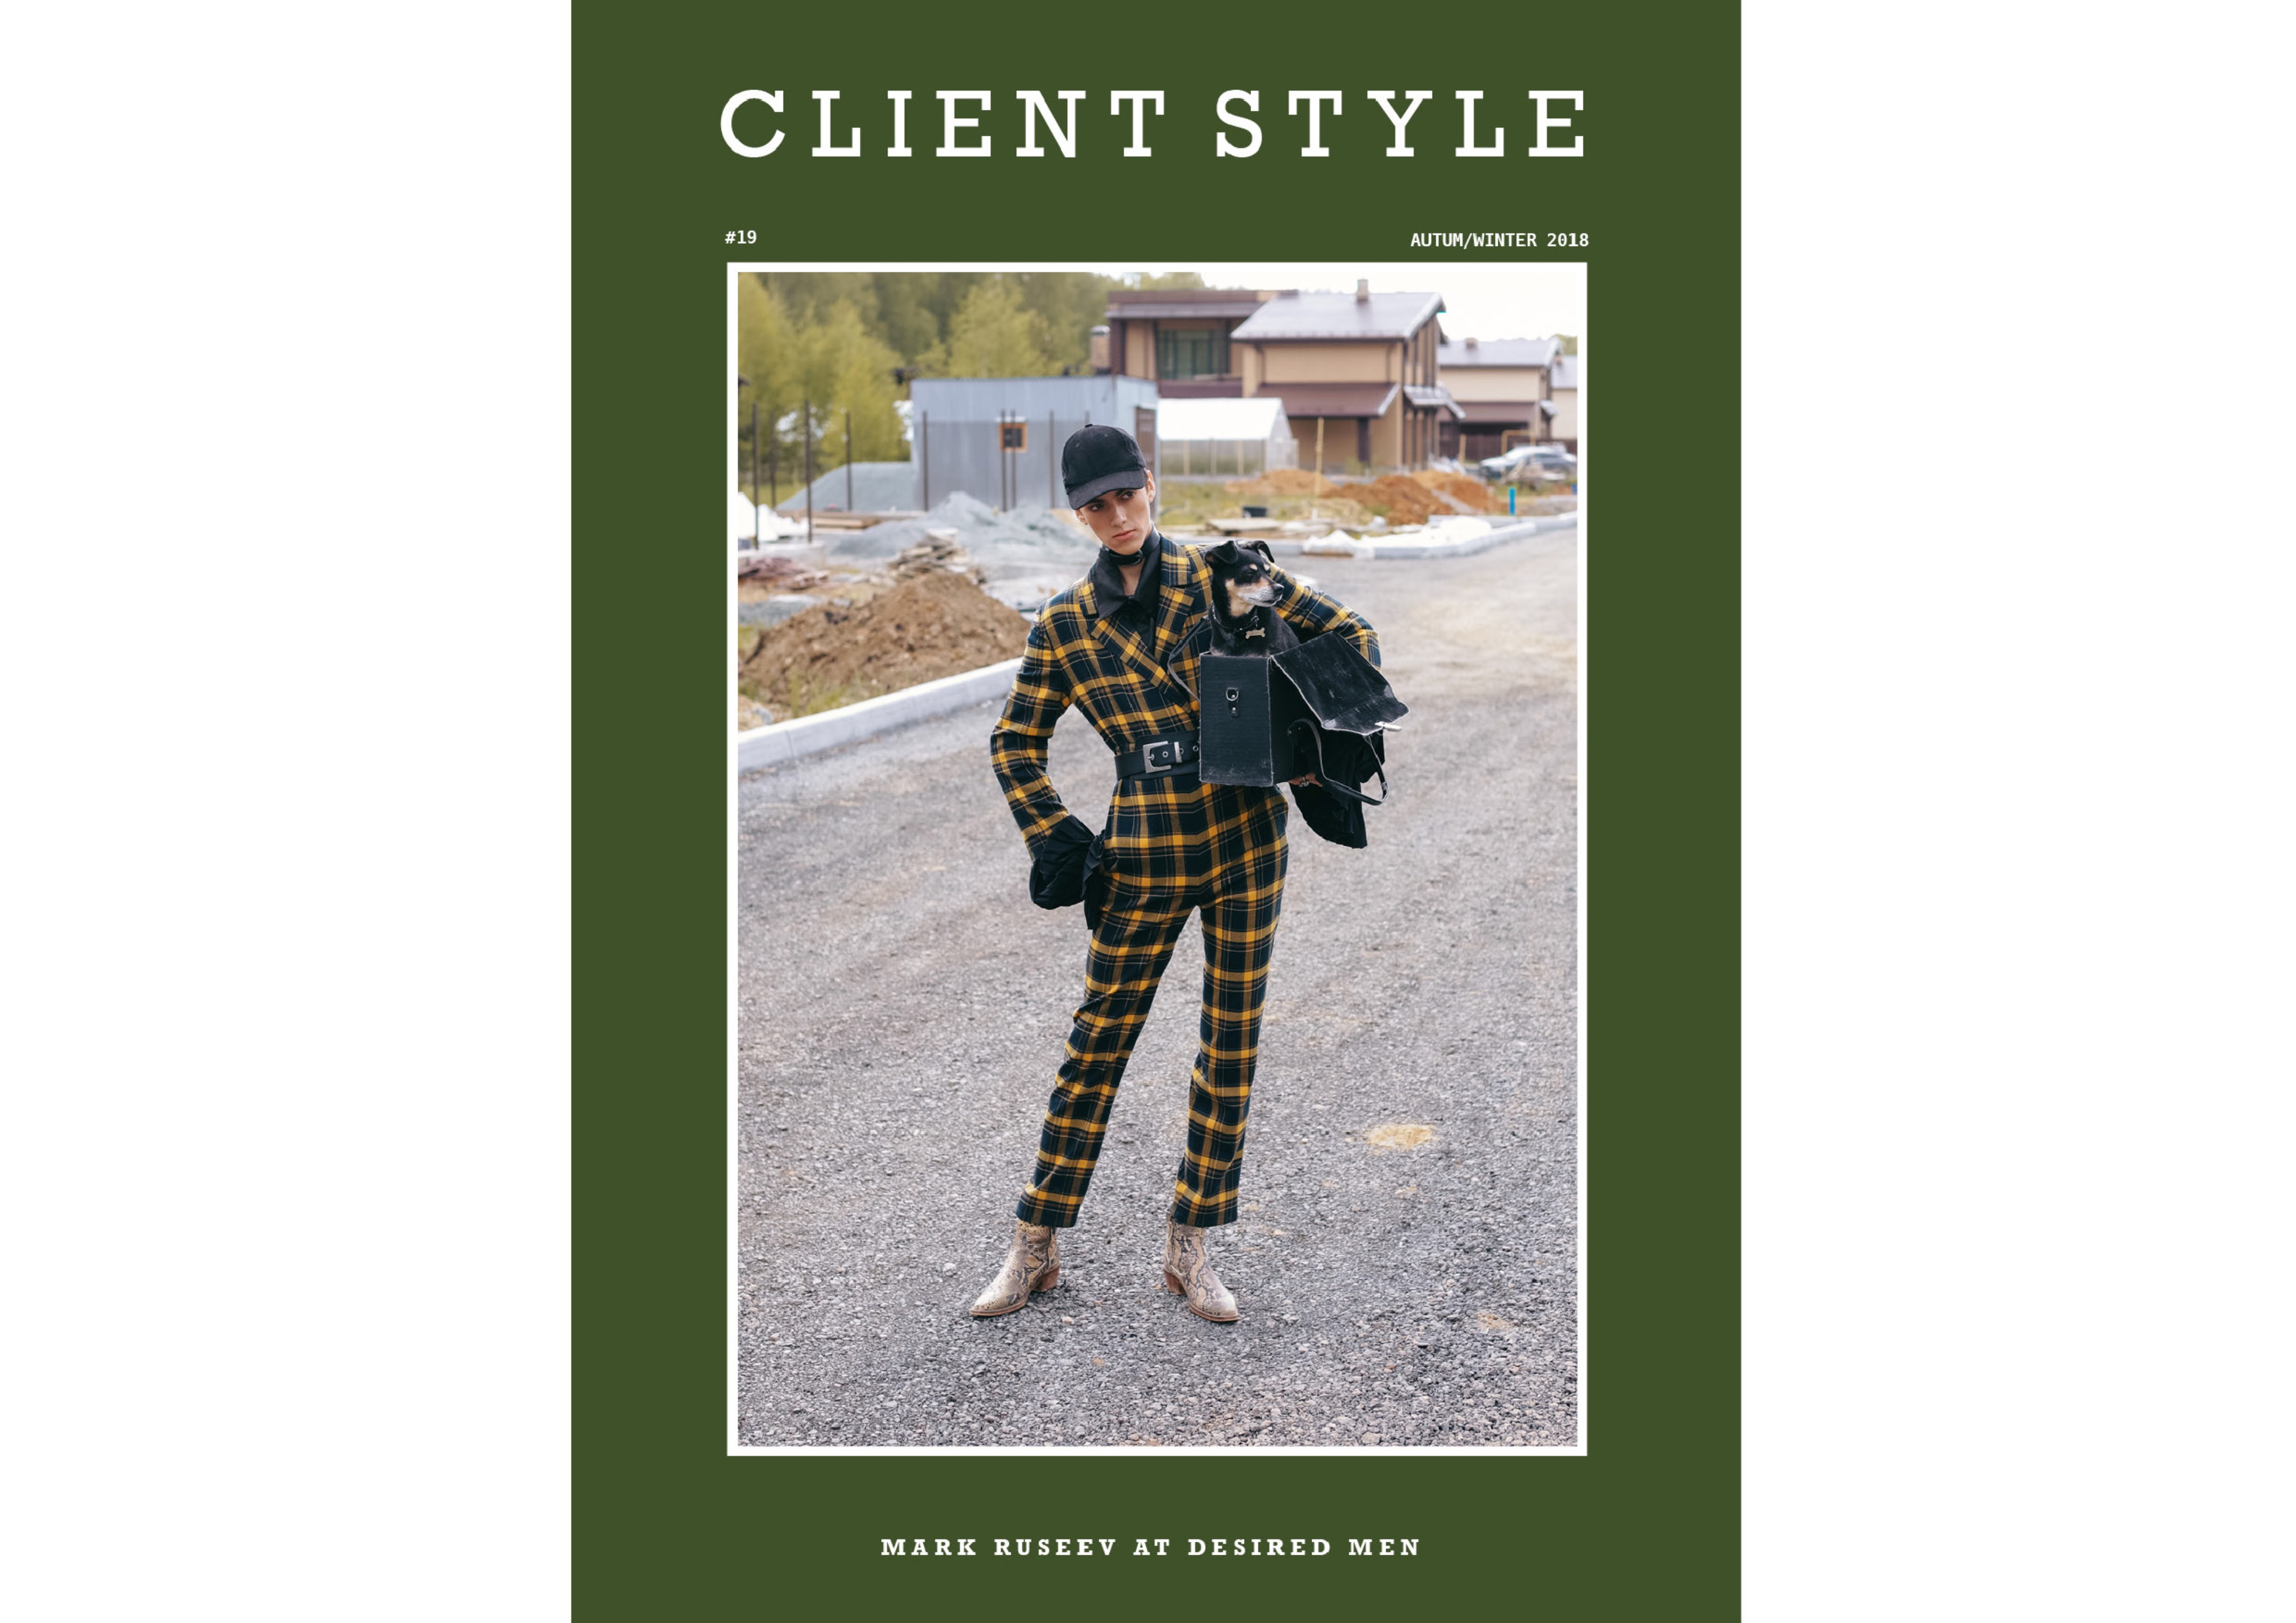 Client Style UK #19 (Print Edition)